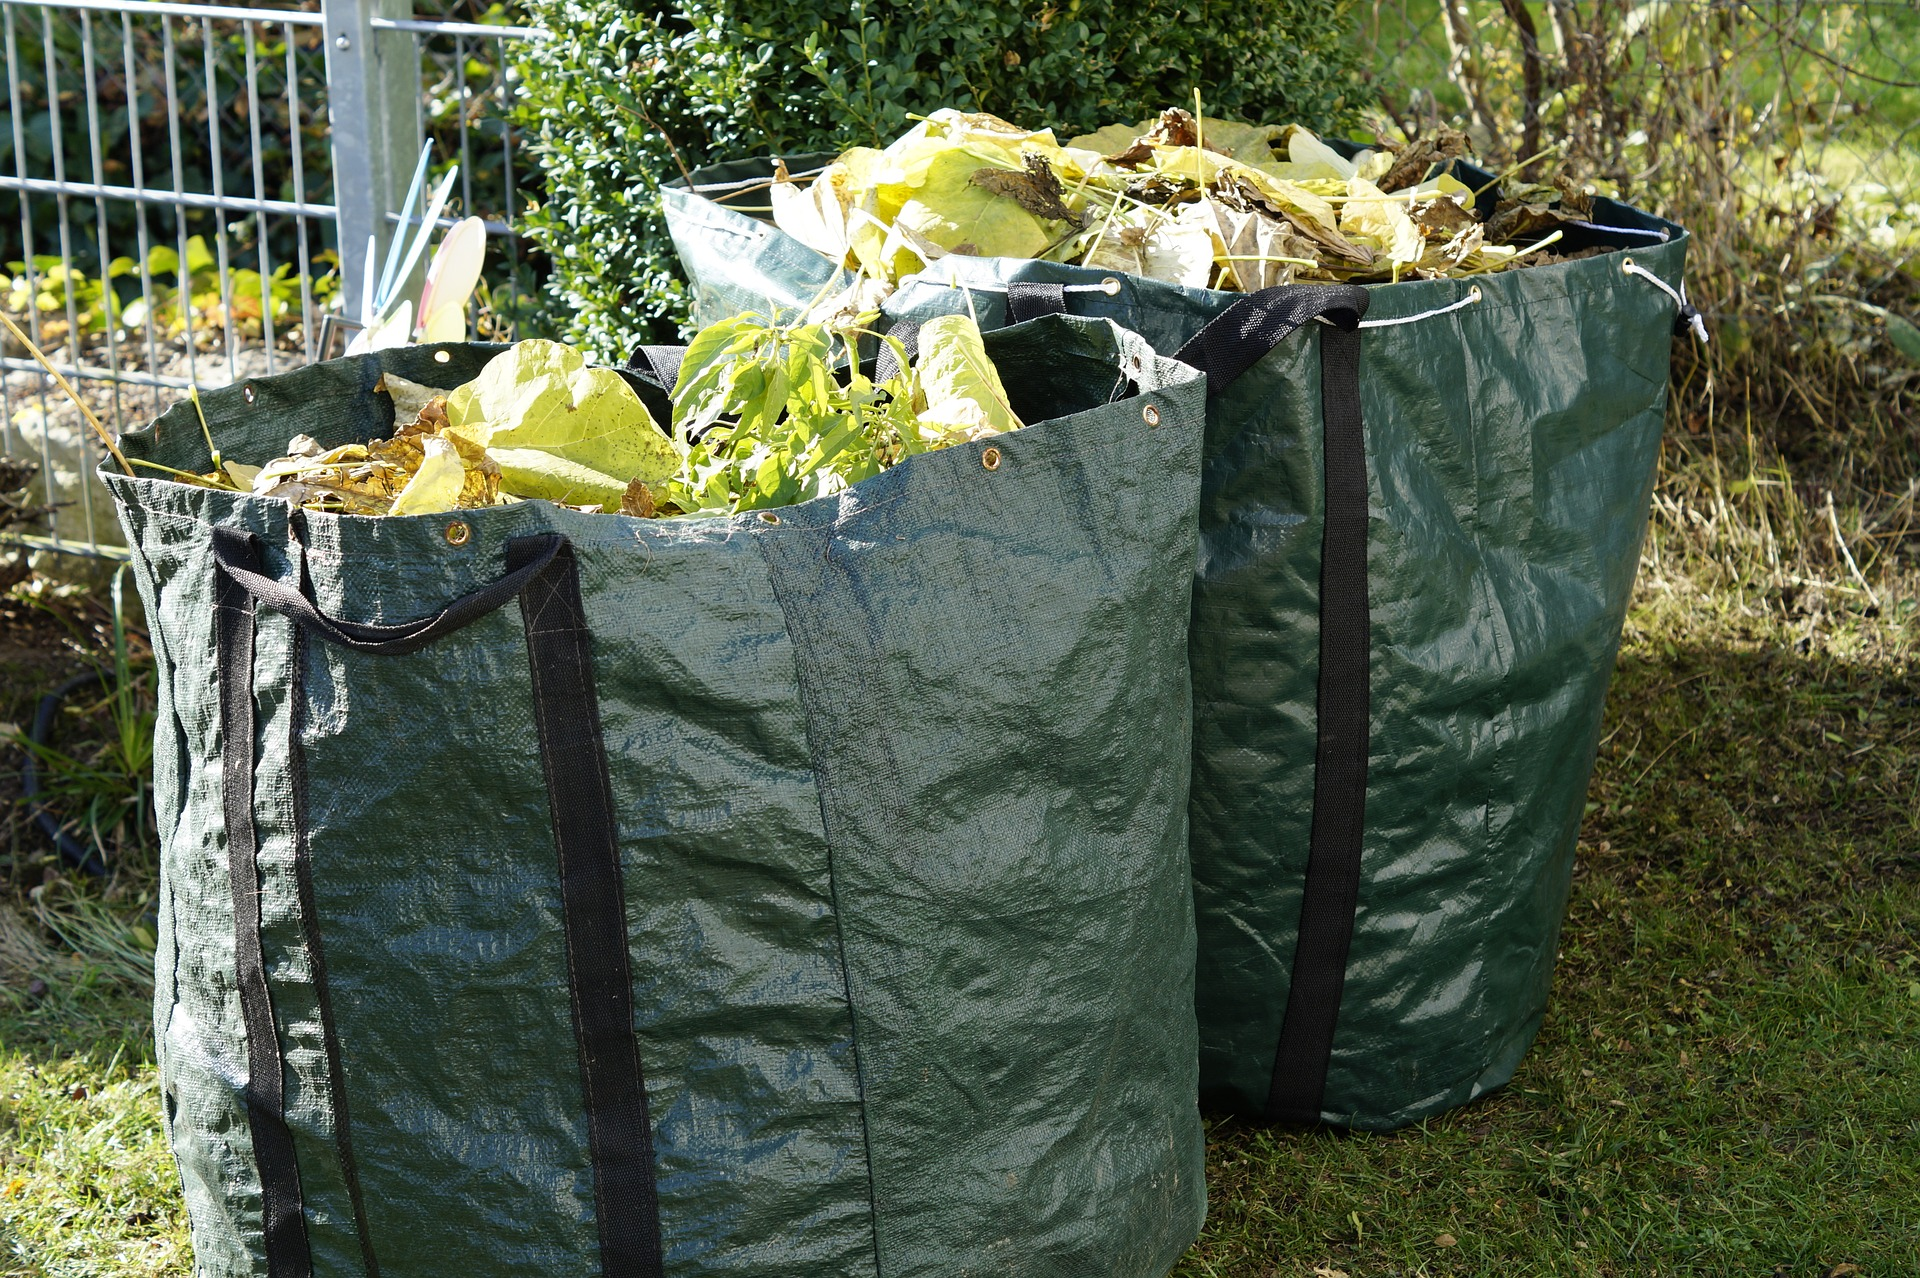 danjos garden waste collection